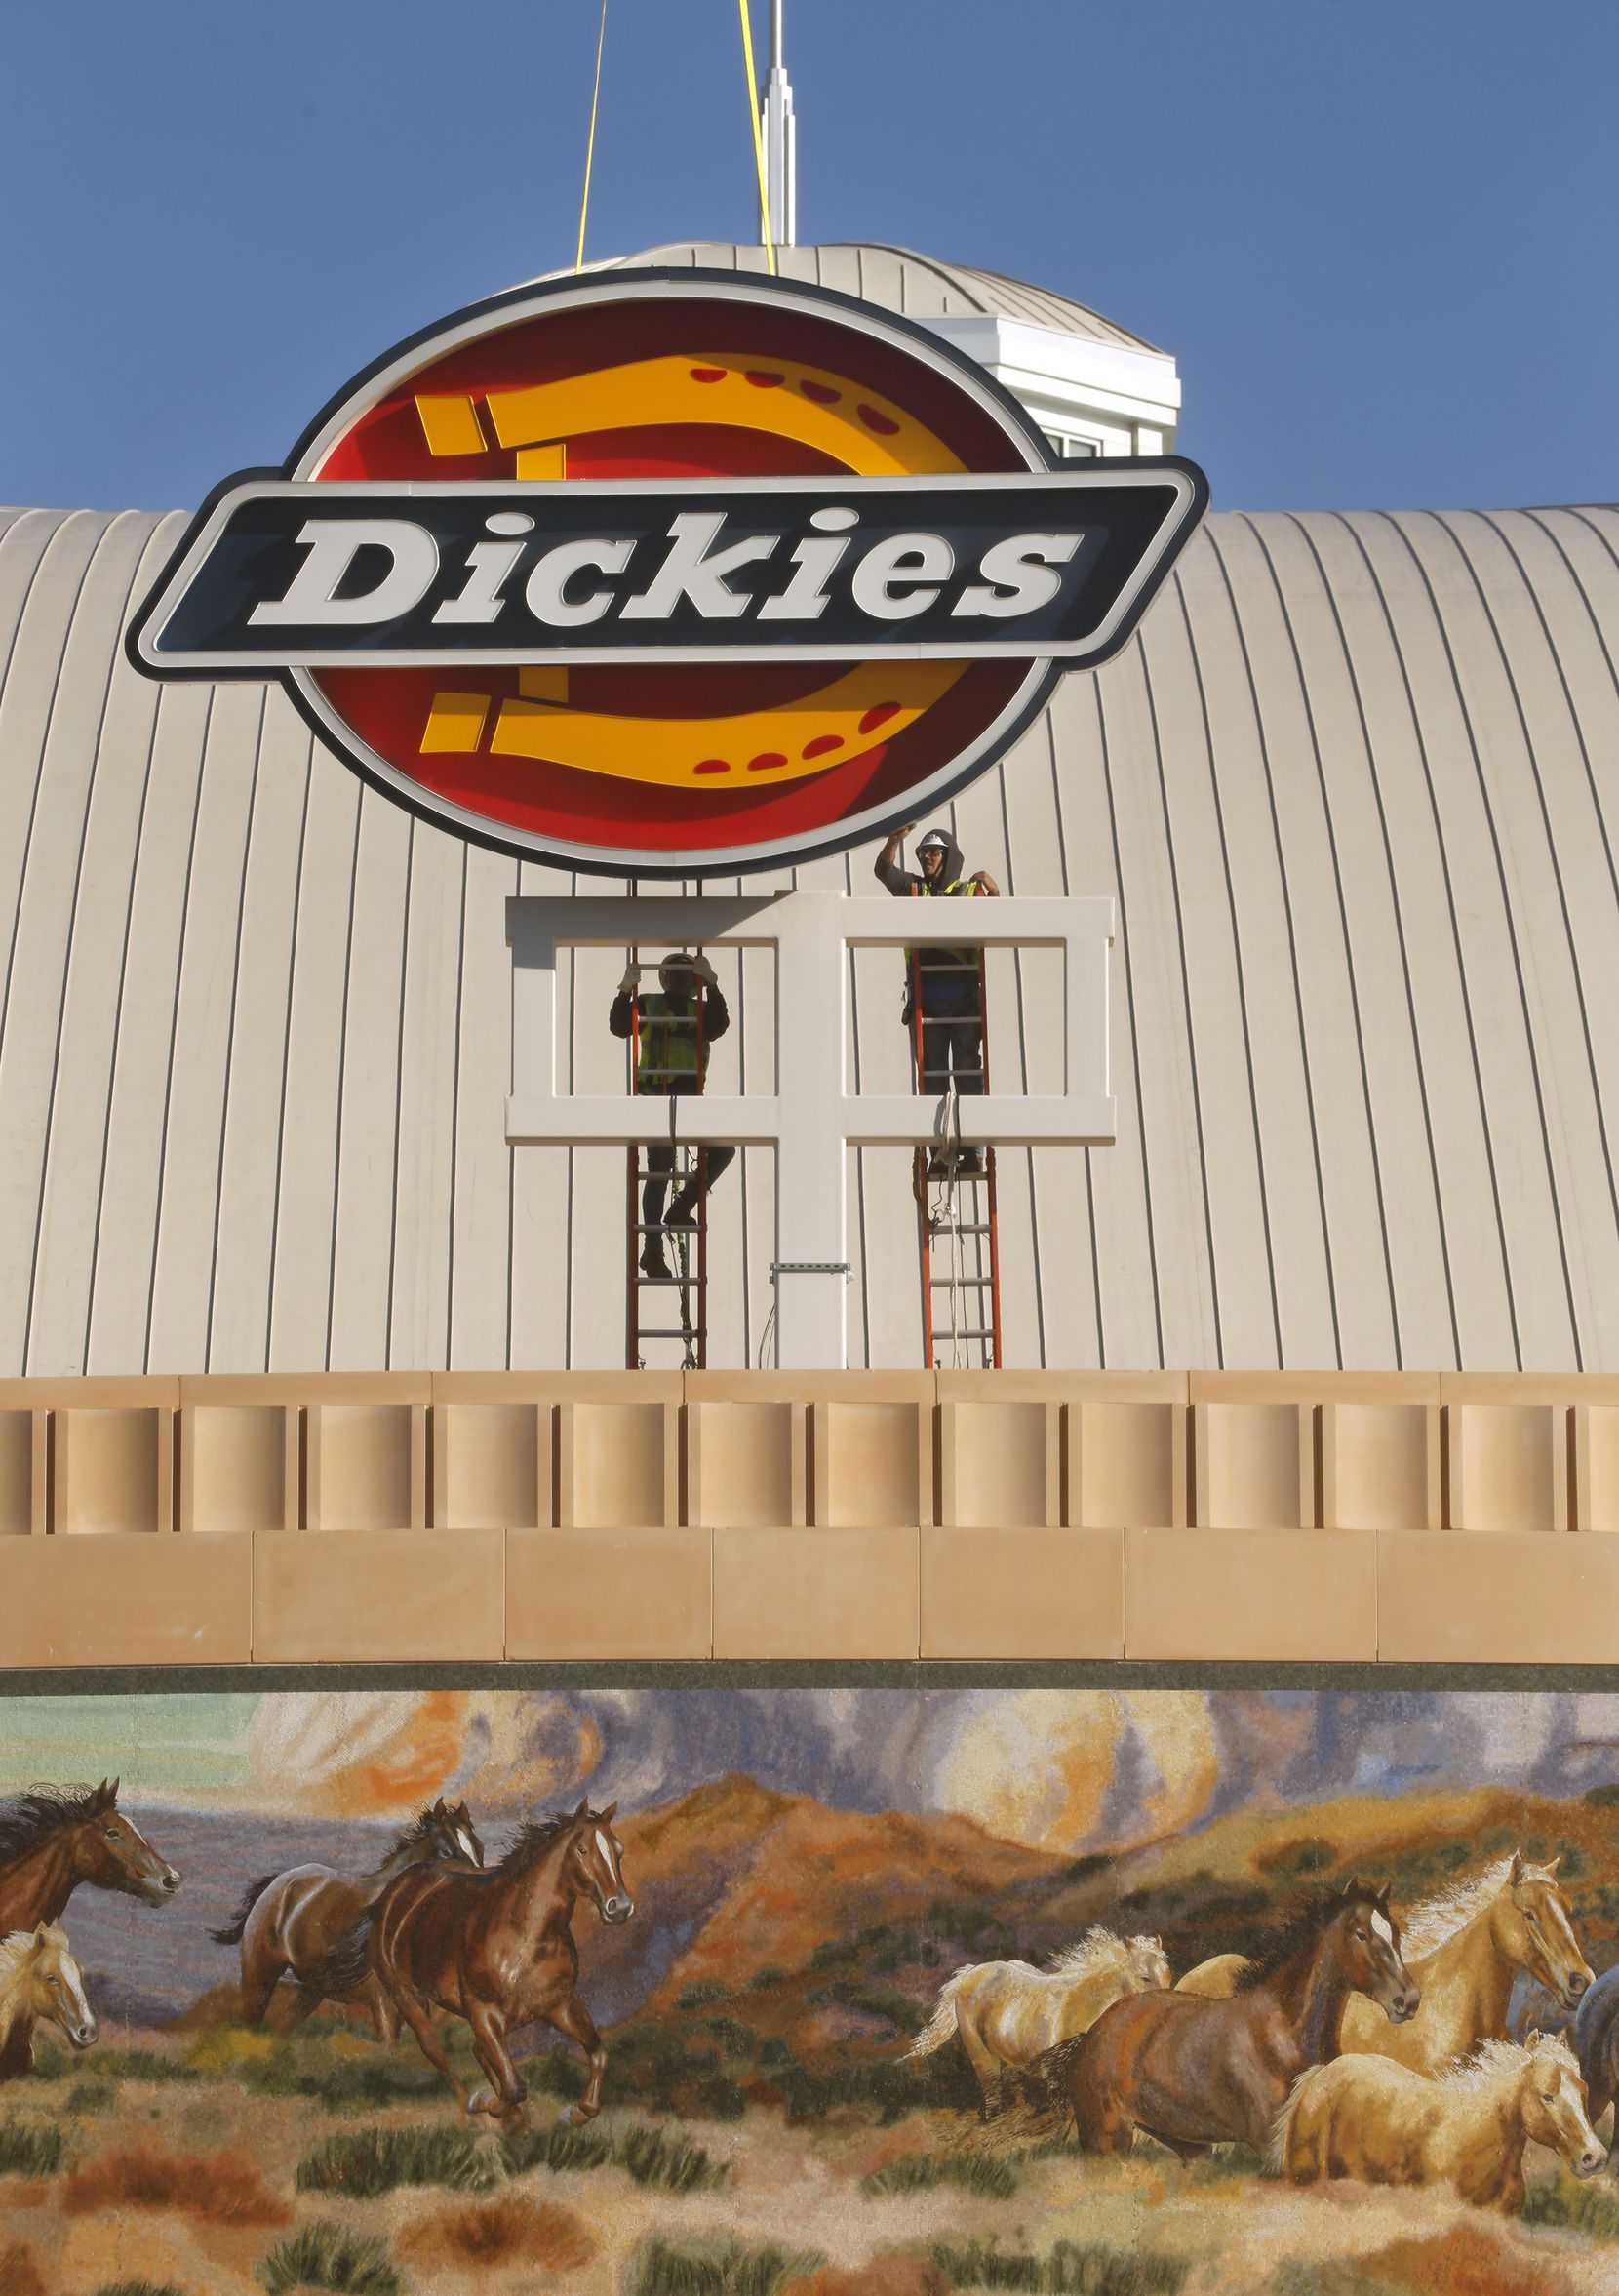 With a lift from 5 State Helicopters, a crew from SSC Signs and Lighting guided a large Dickies logo into place atop the new Dickies Arena.